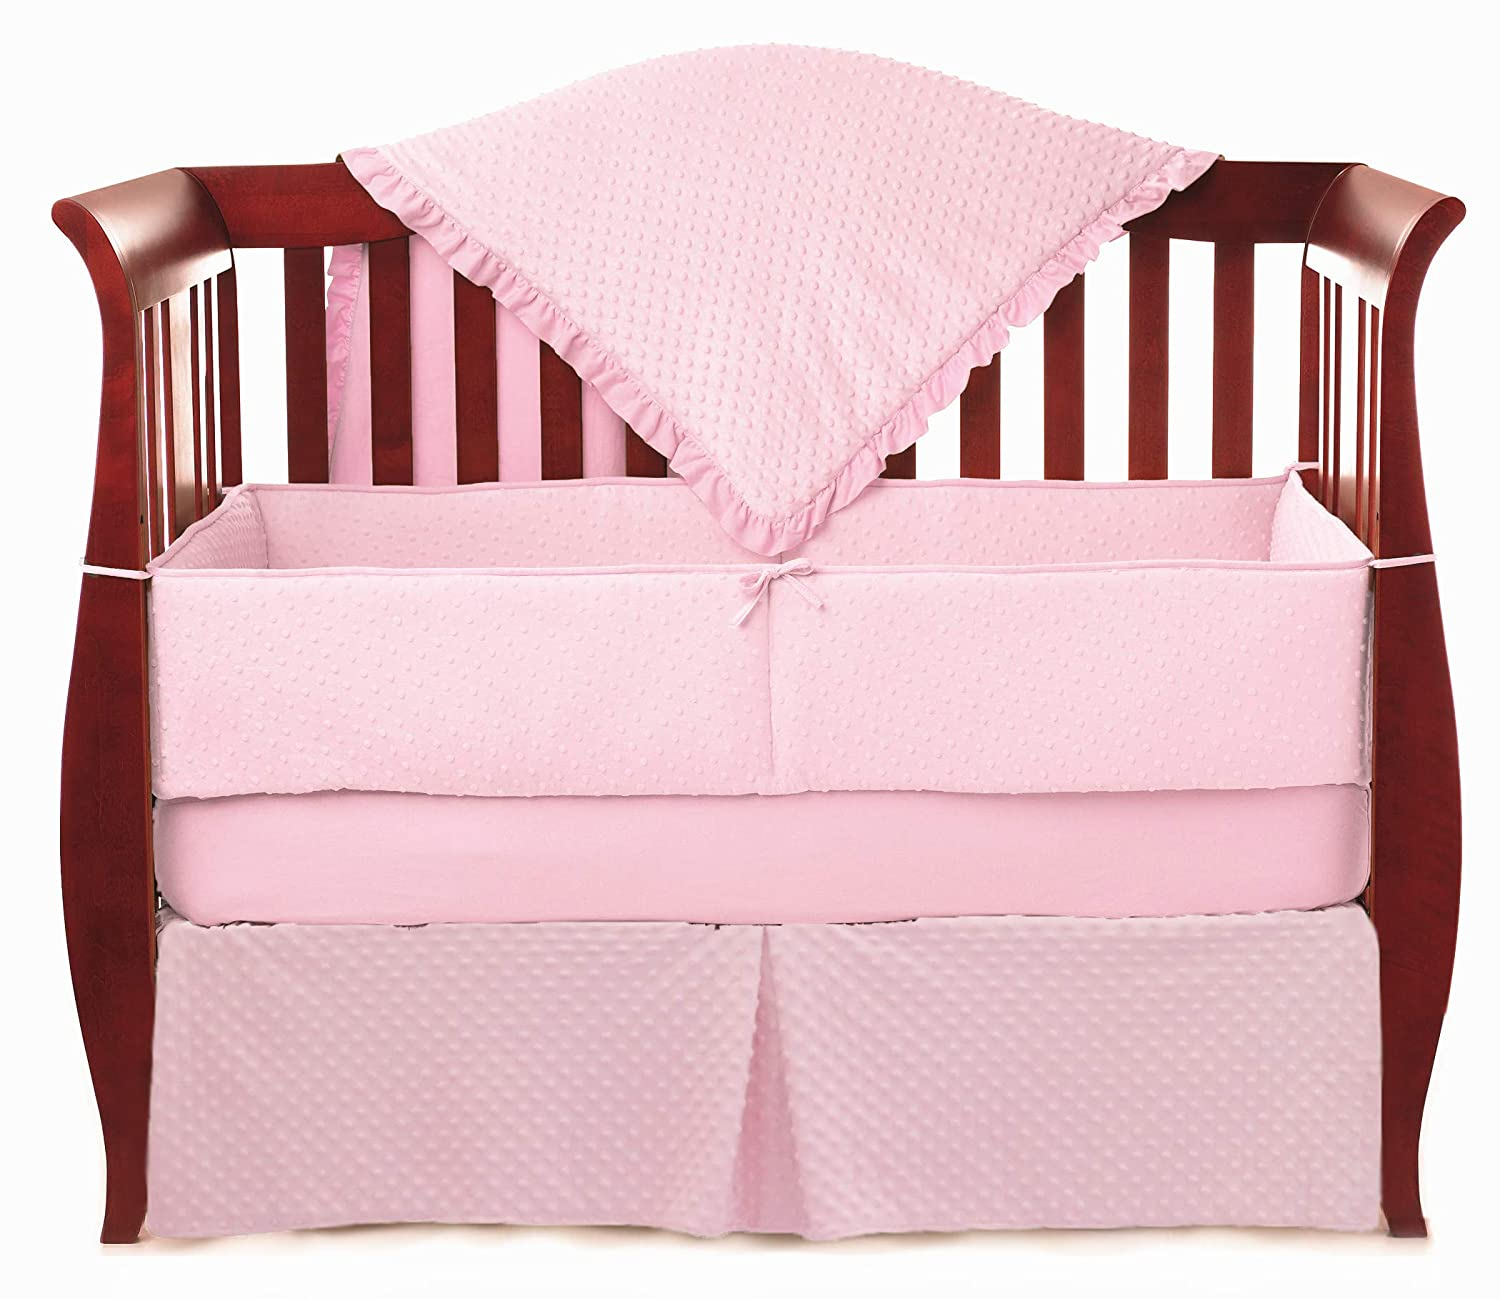 B000GXCBQ2 American Baby Company Heavenly Soft Minky Dot 4-Piece Crib Bedding Set, Pink, for Girls 71dss4ecZFL